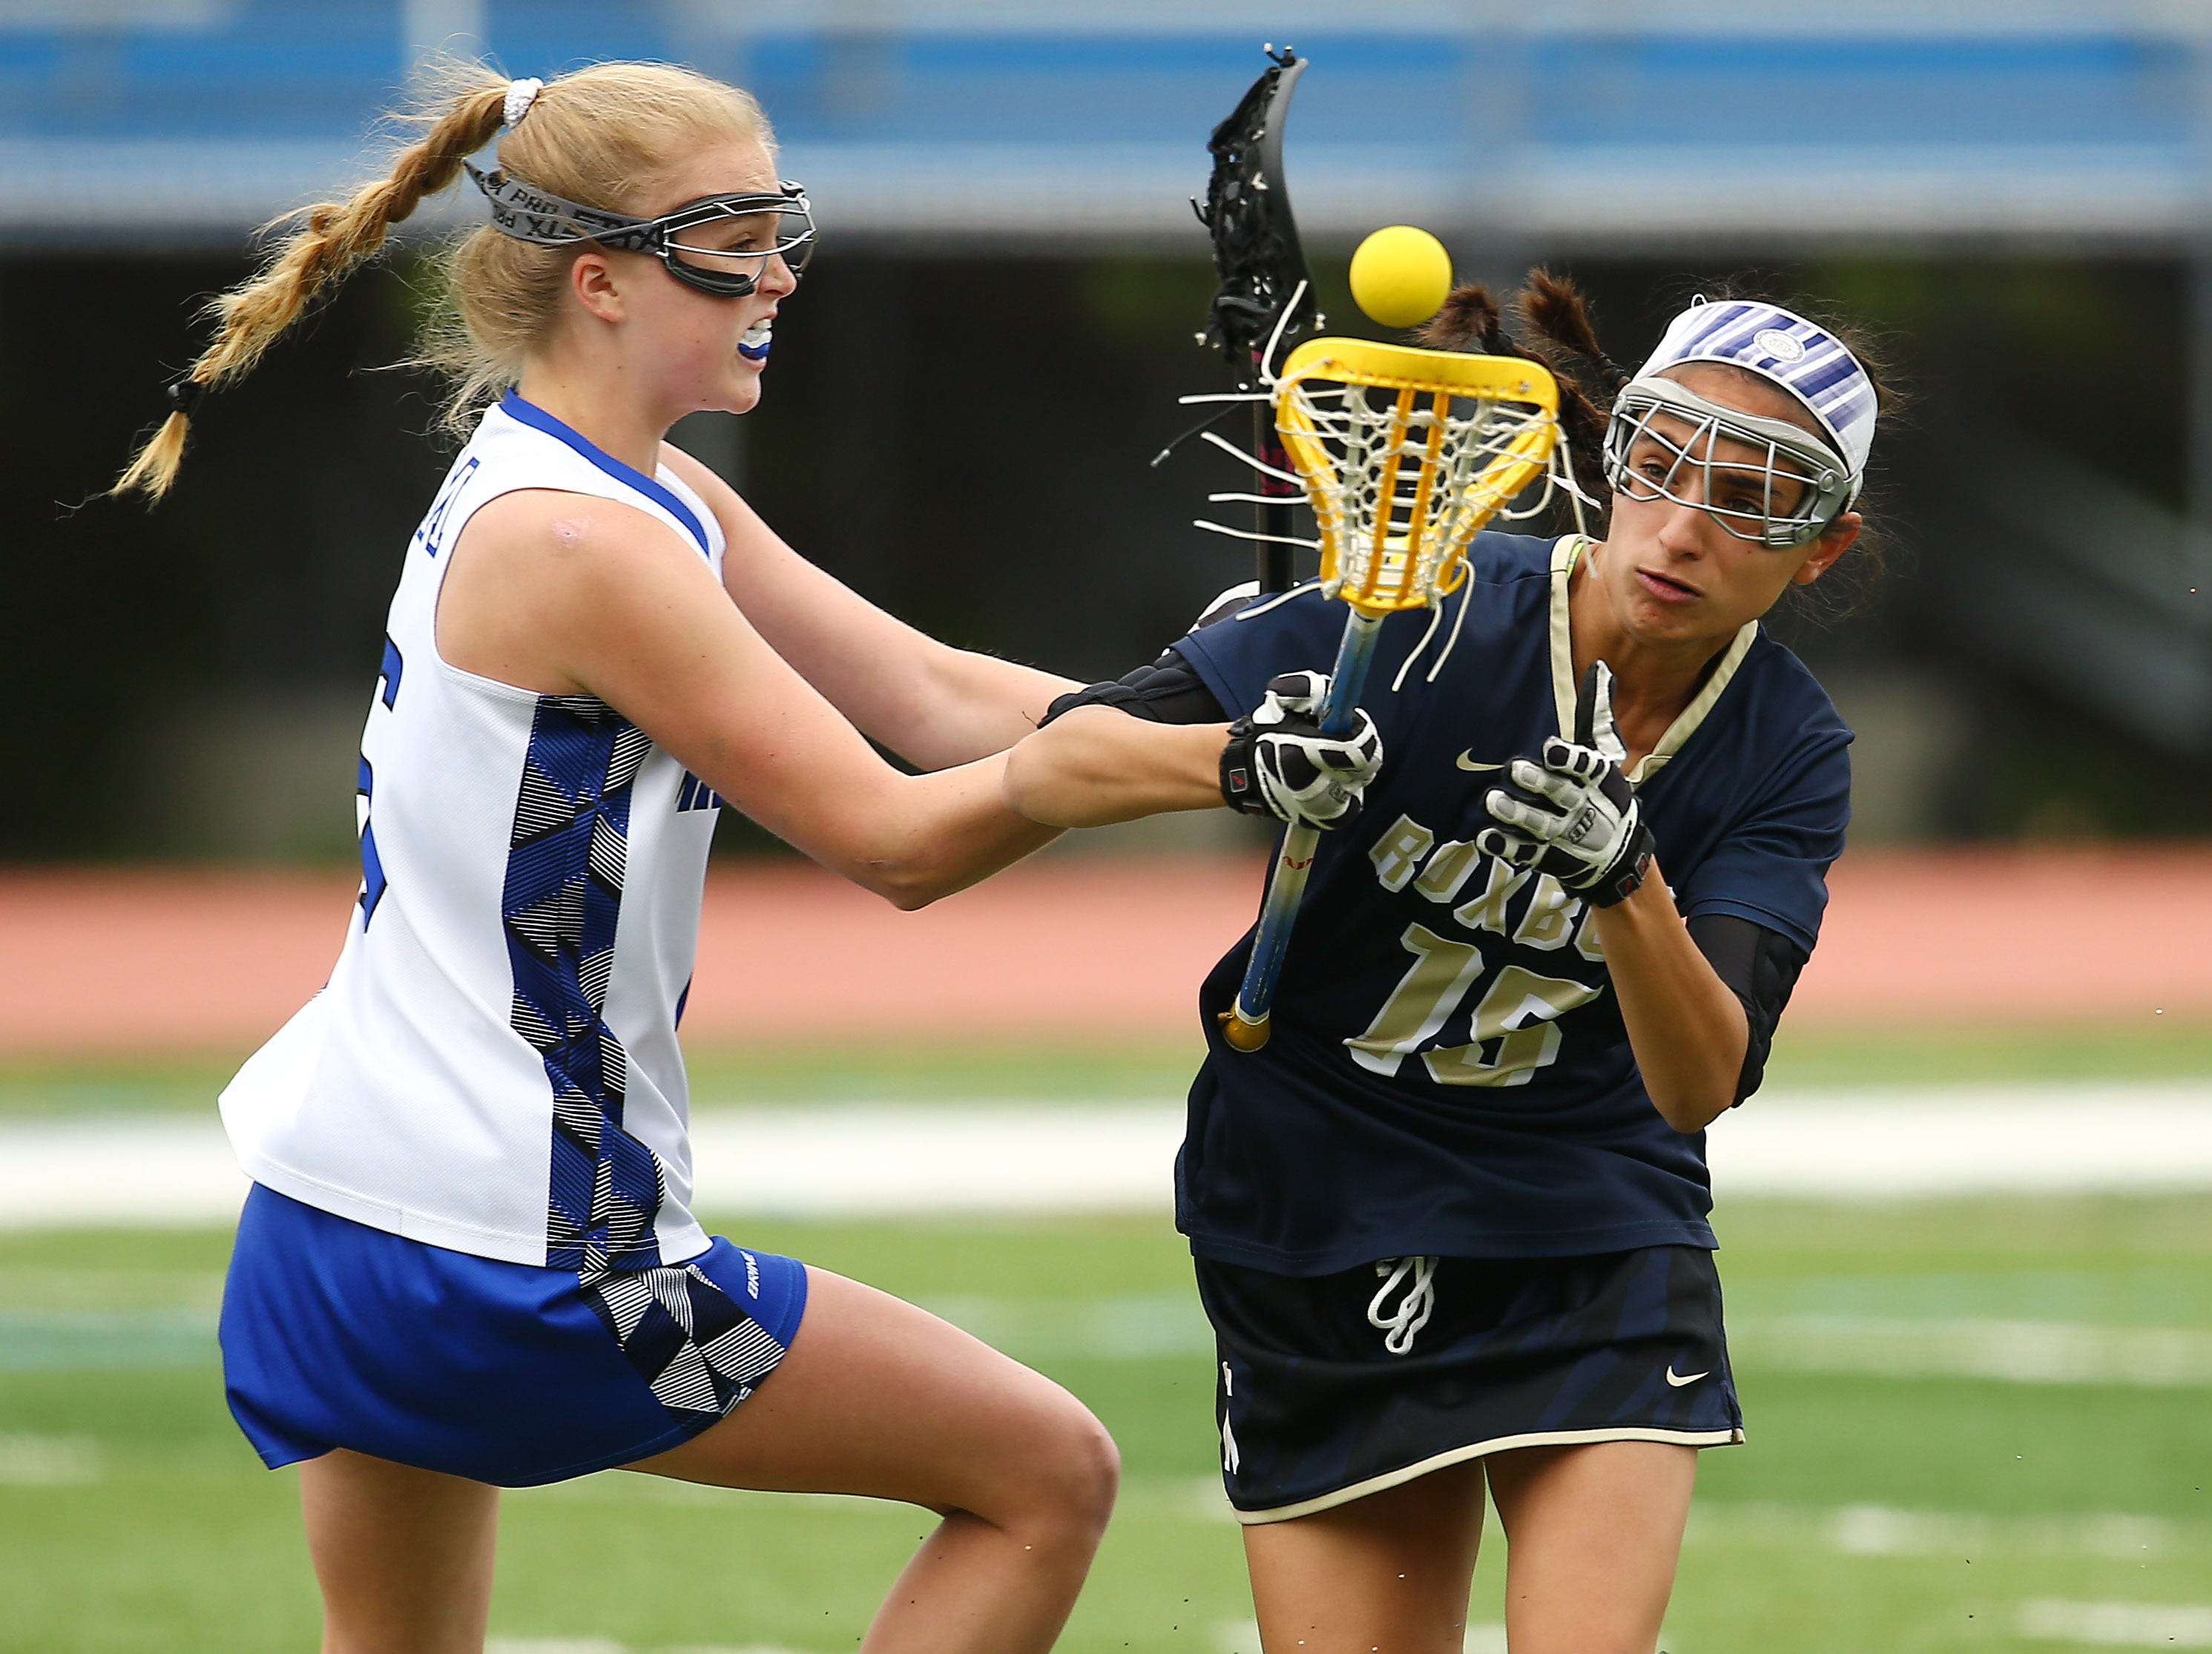 Roxbury's Emma Karnitsky is checked vs. Millburn in an NJSIAA Girls North 2 Group III second round game. May 18, 2018. Millburn, NJ